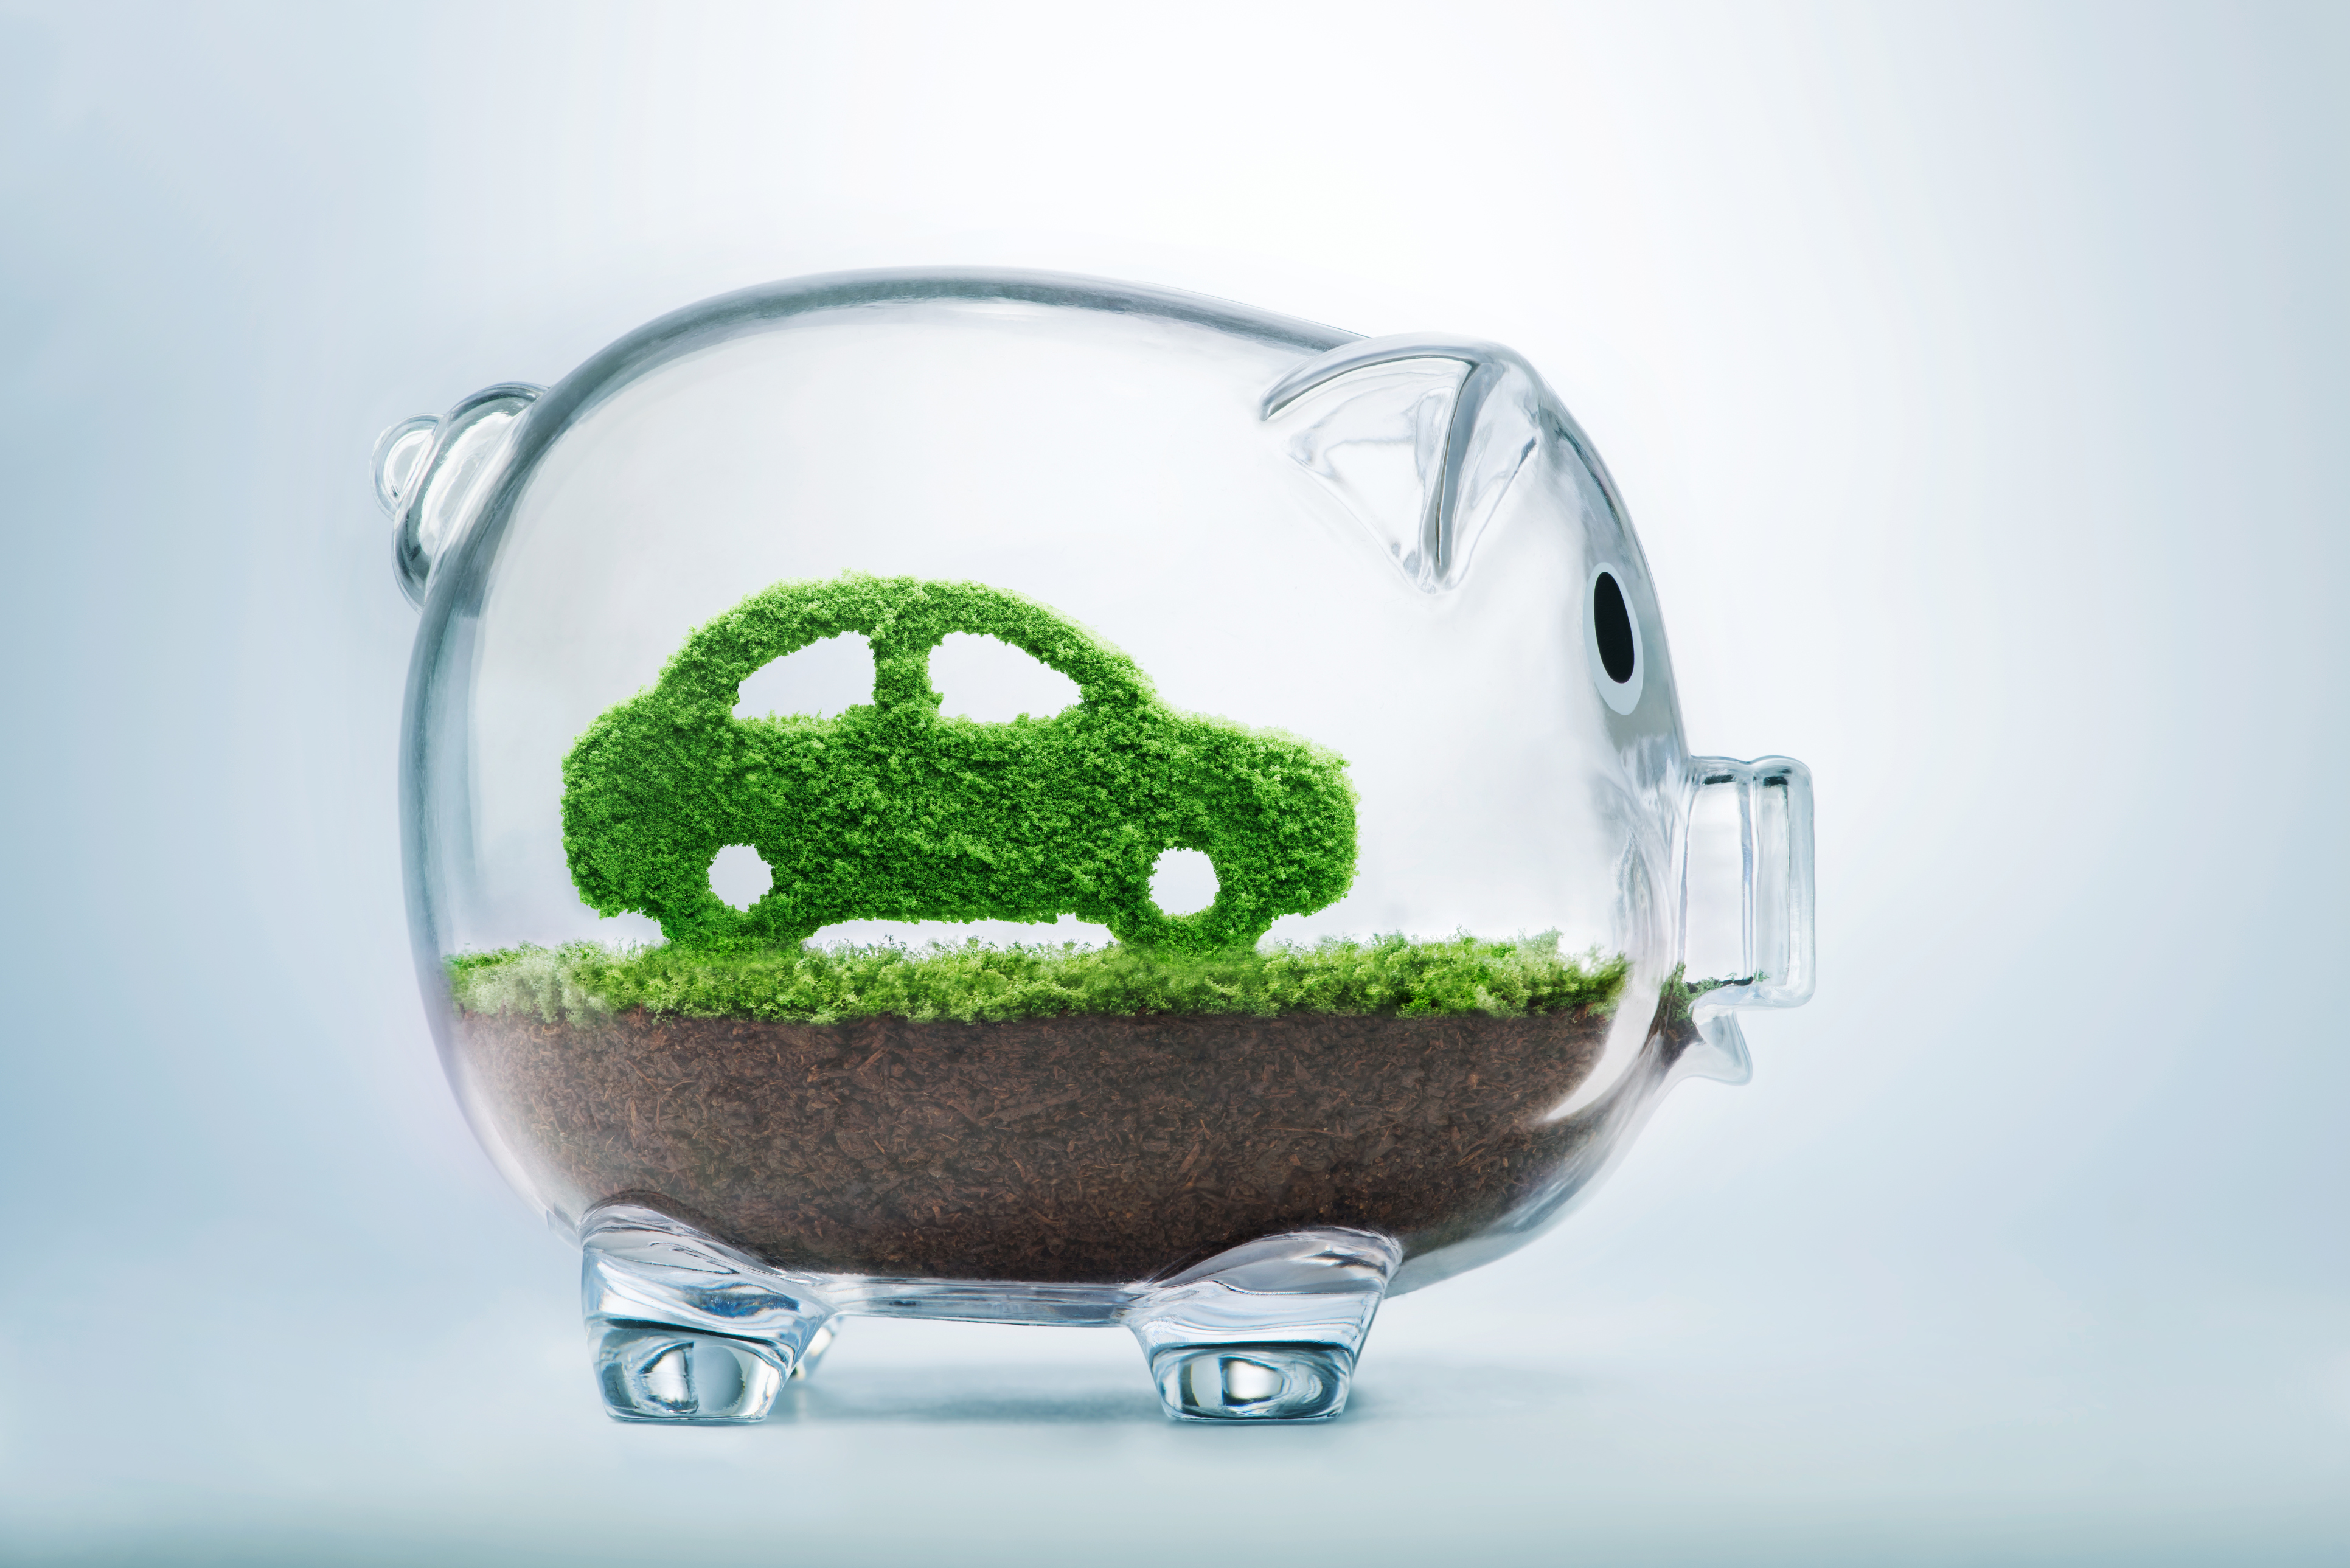 Green energy concept with grass growing in shape of car inside transparent piggy bank